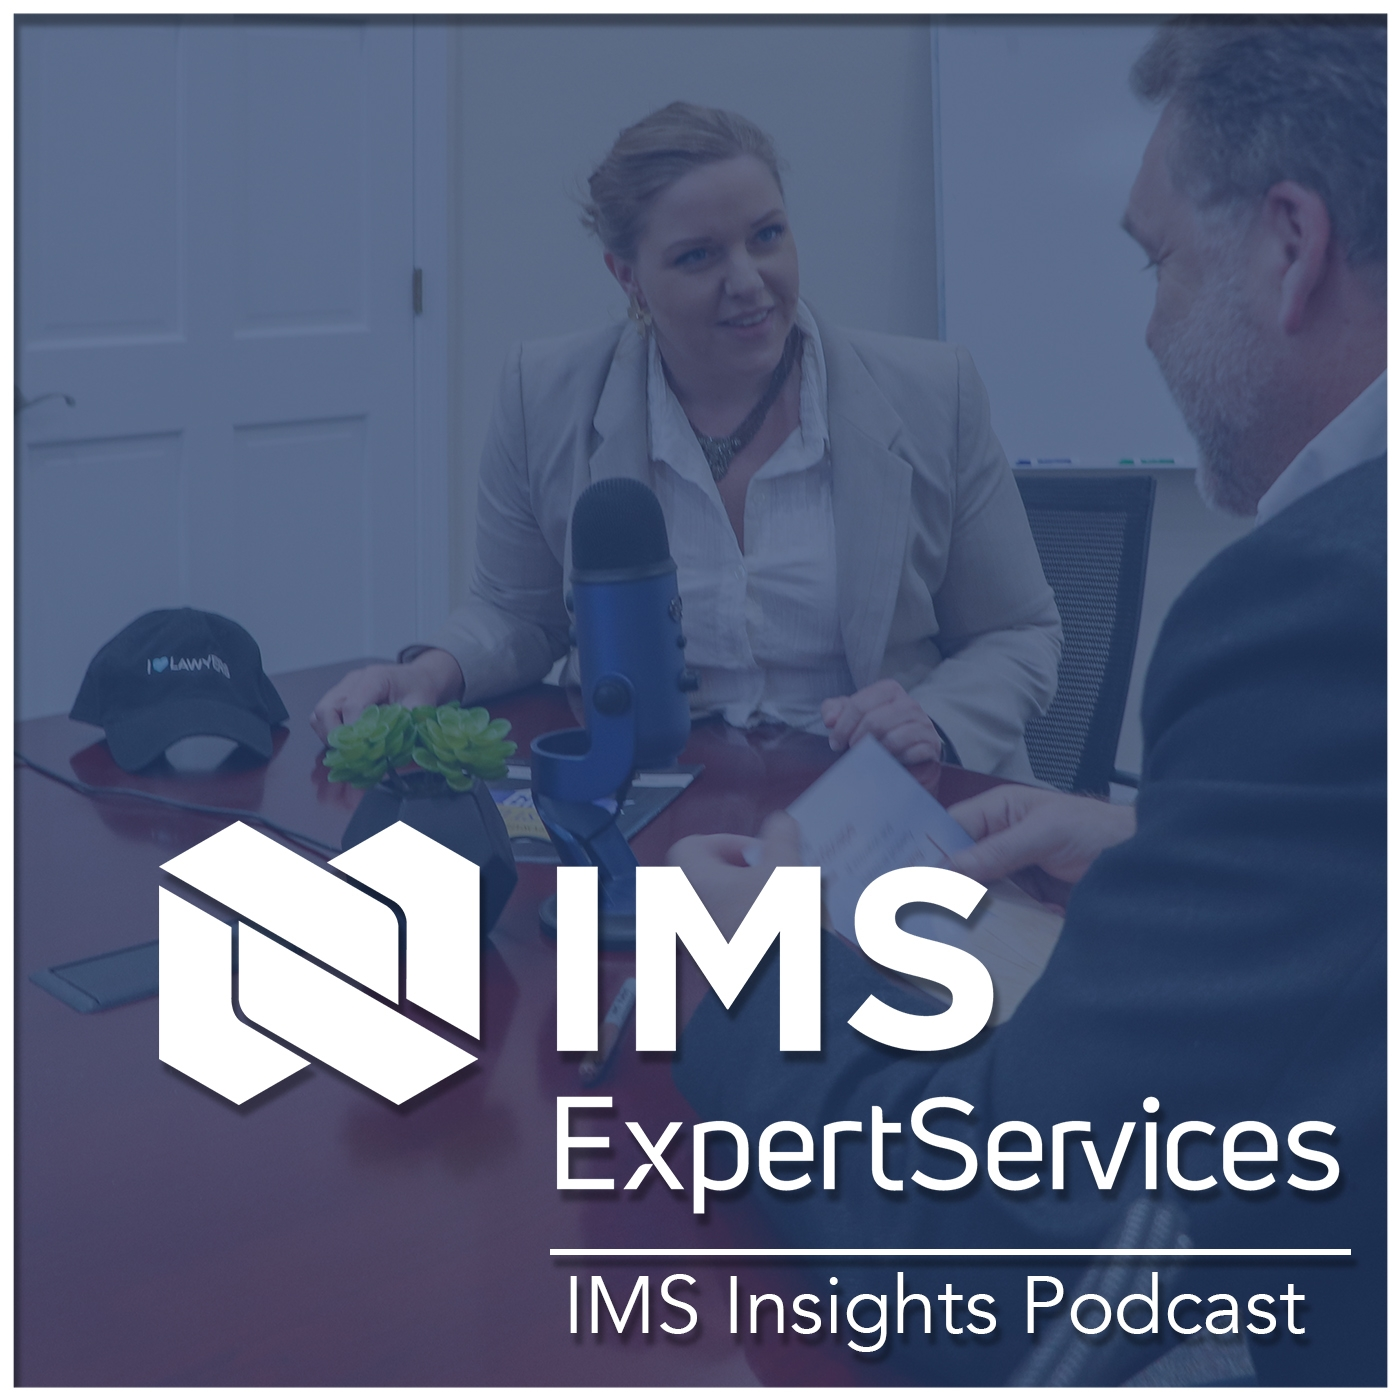 https://www.ims-expertservices.com/wp-content/uploads/2019/06/Podcast-Cover.jpg